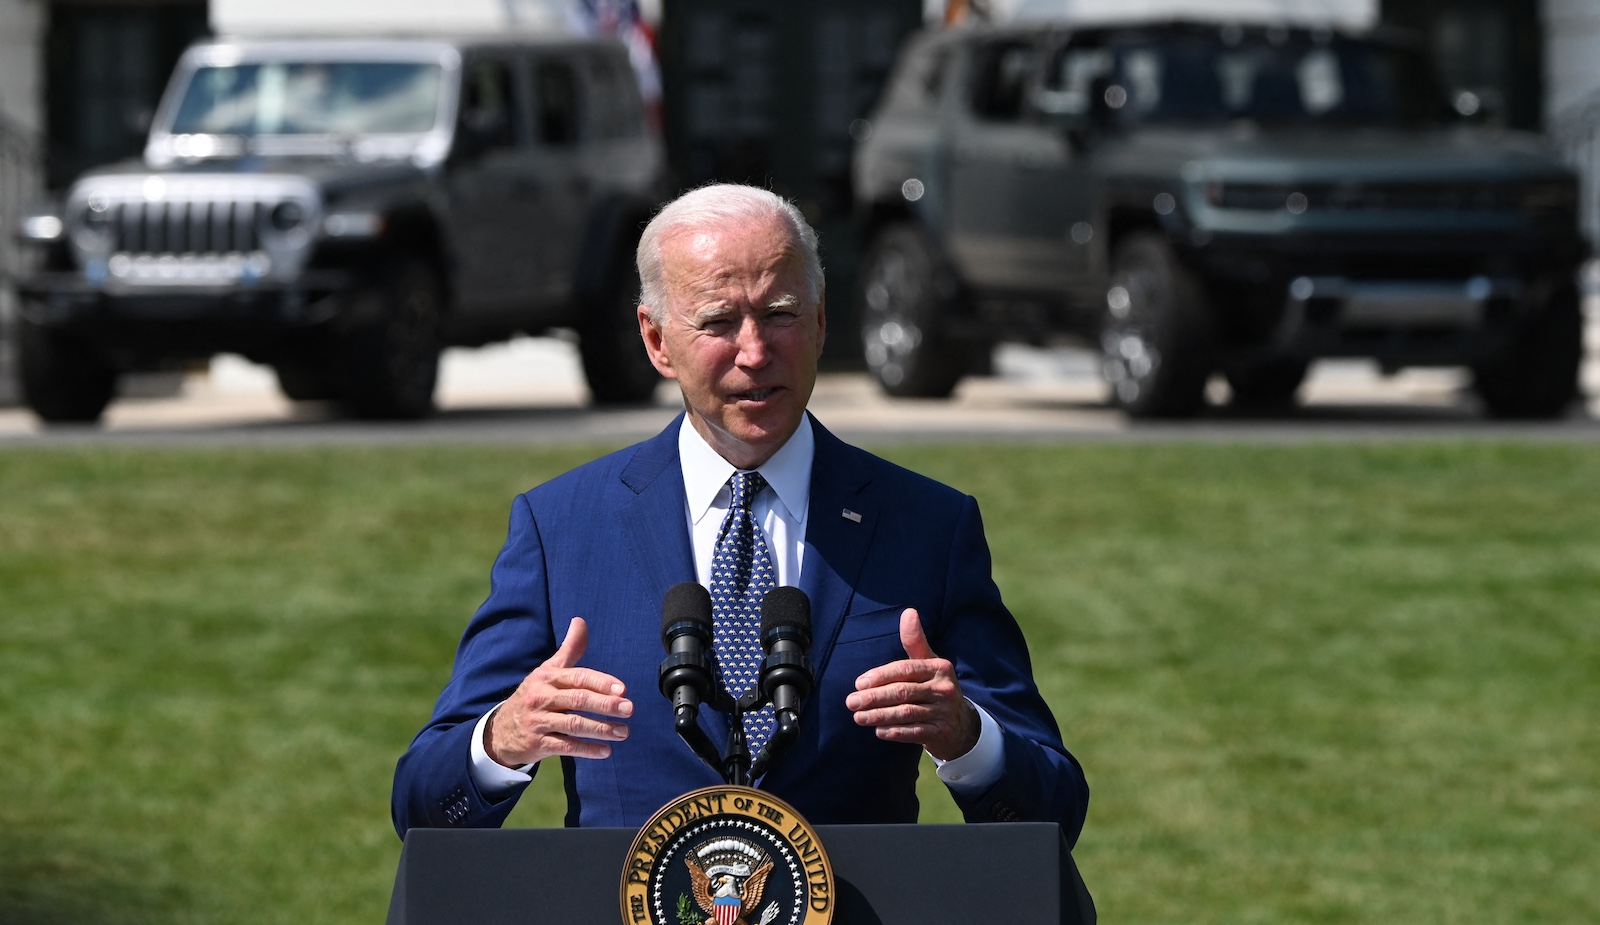 Biden stands in front of two electric vehicles.